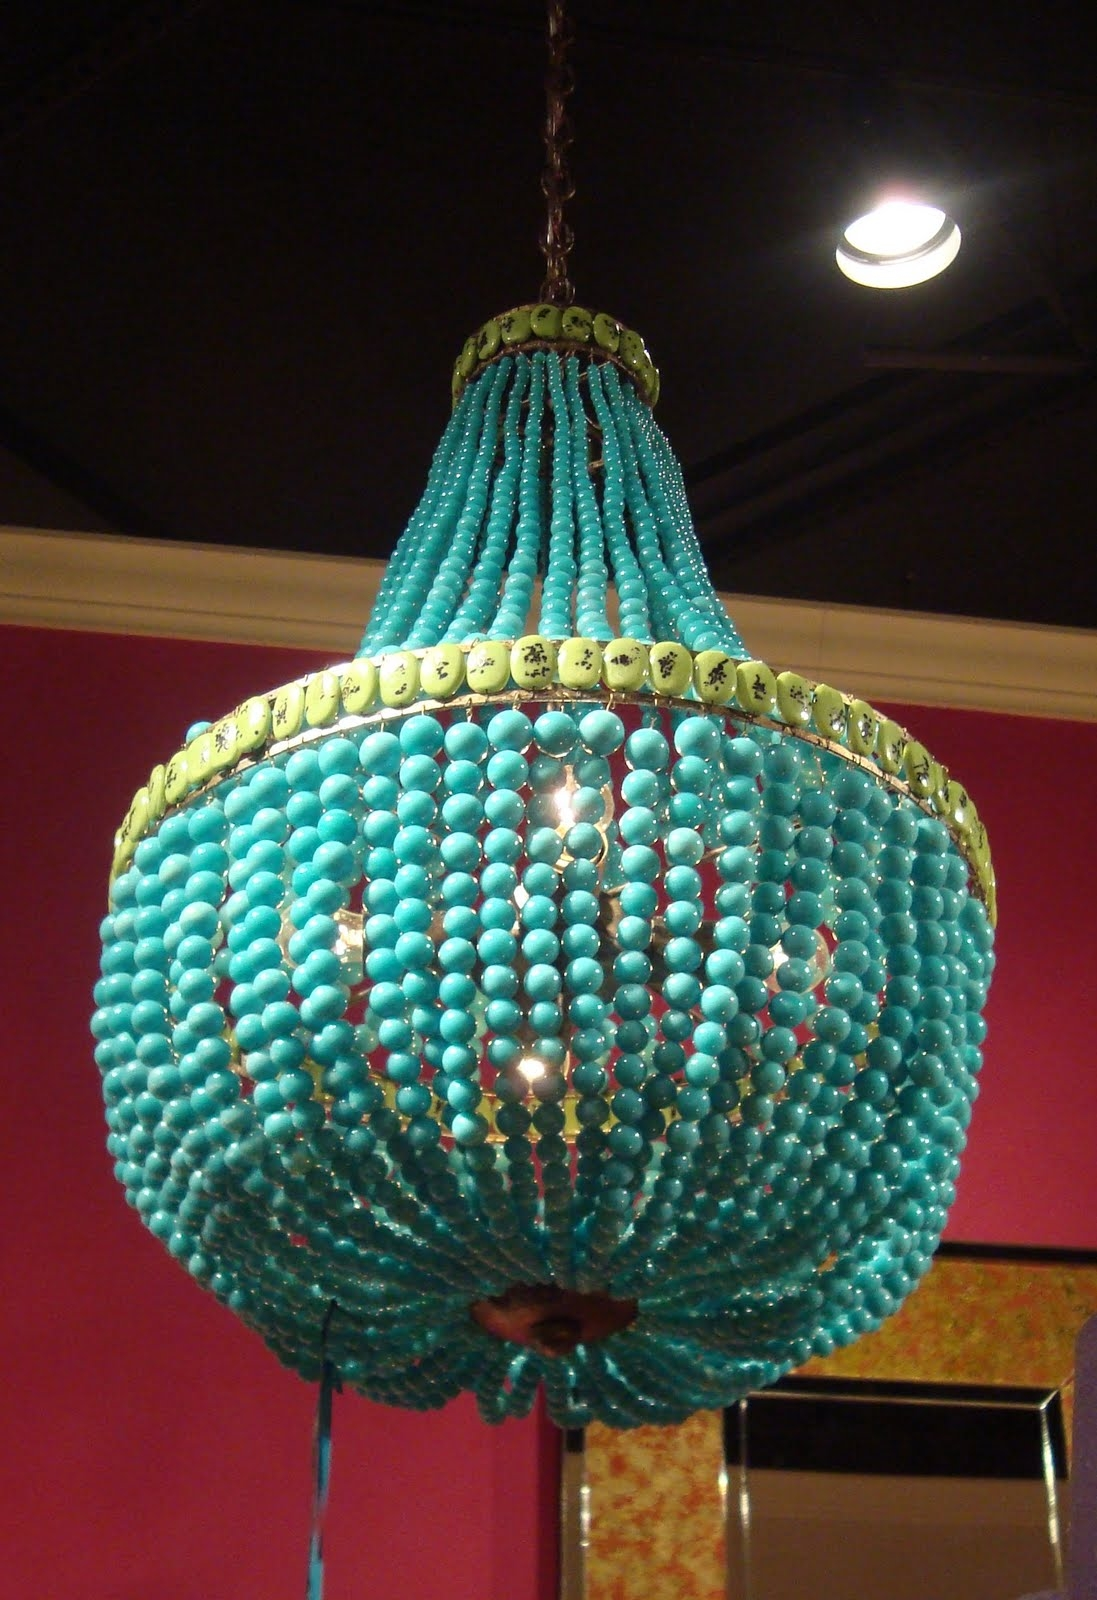 Tonic Home October 2011 In Turquoise Empire Chandeliers (Image 24 of 25)